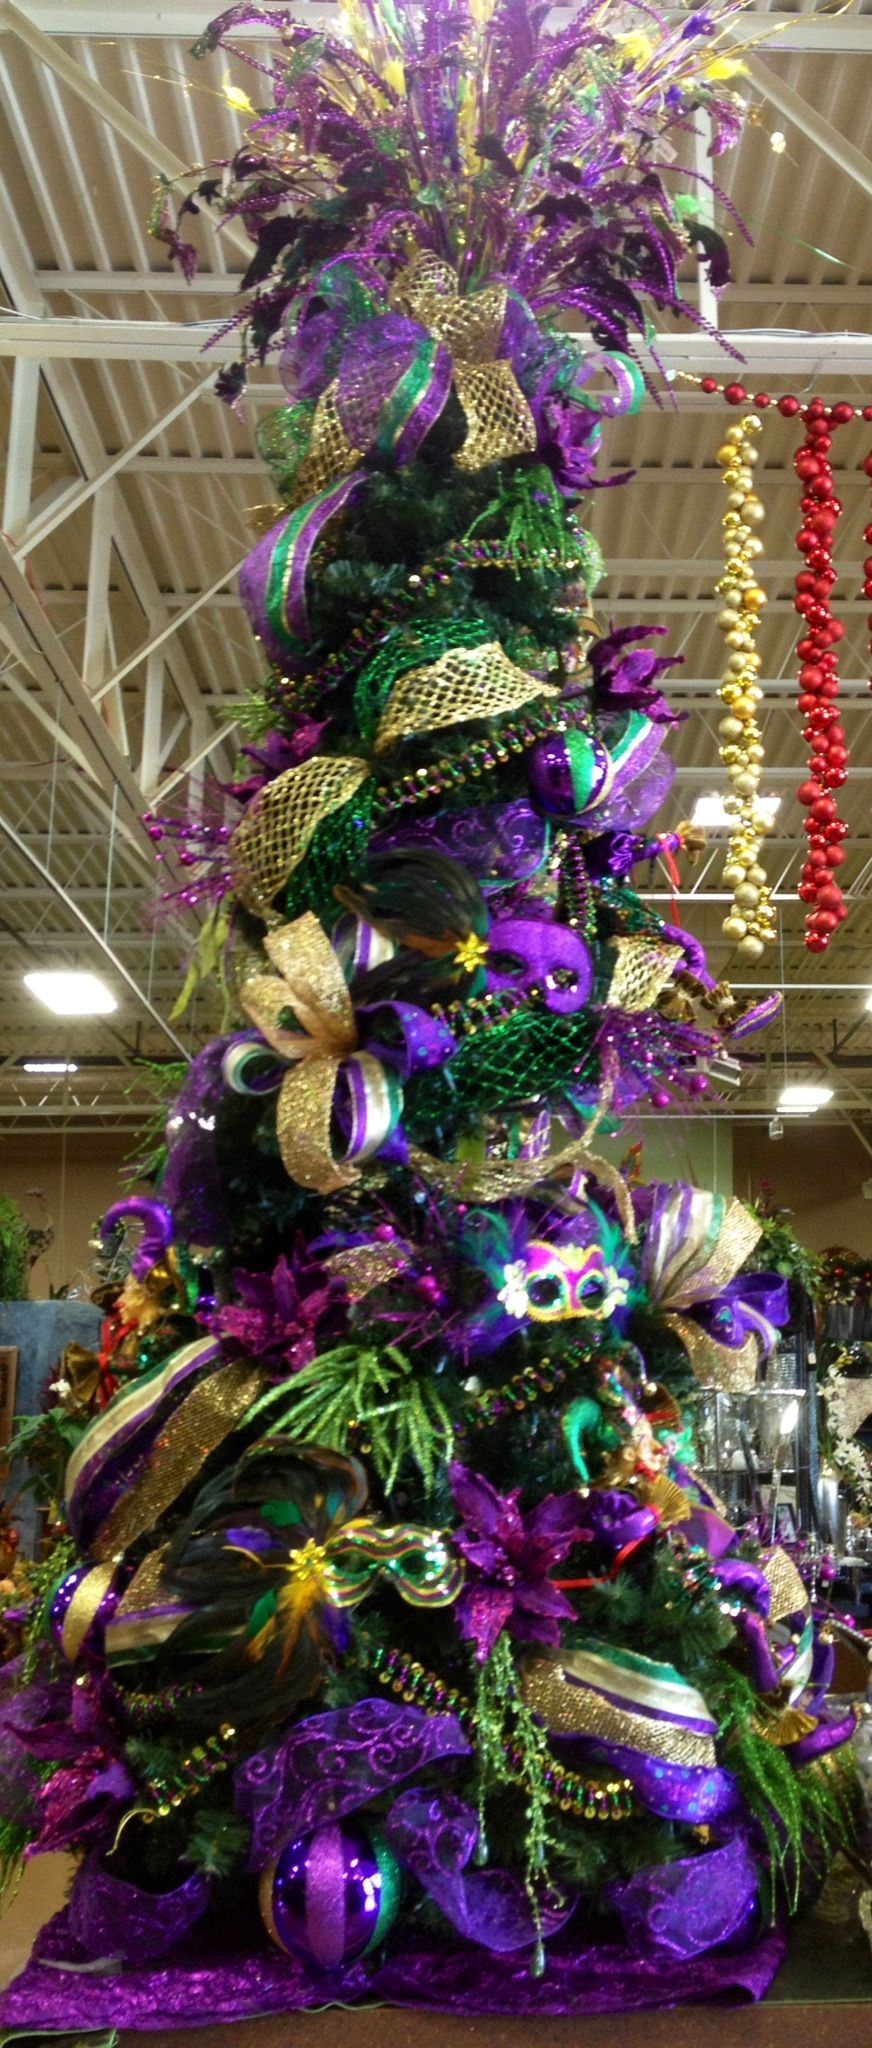 Purple Christmas Trees | Mardi gras | Pinterest | Christmas, Mardi ...